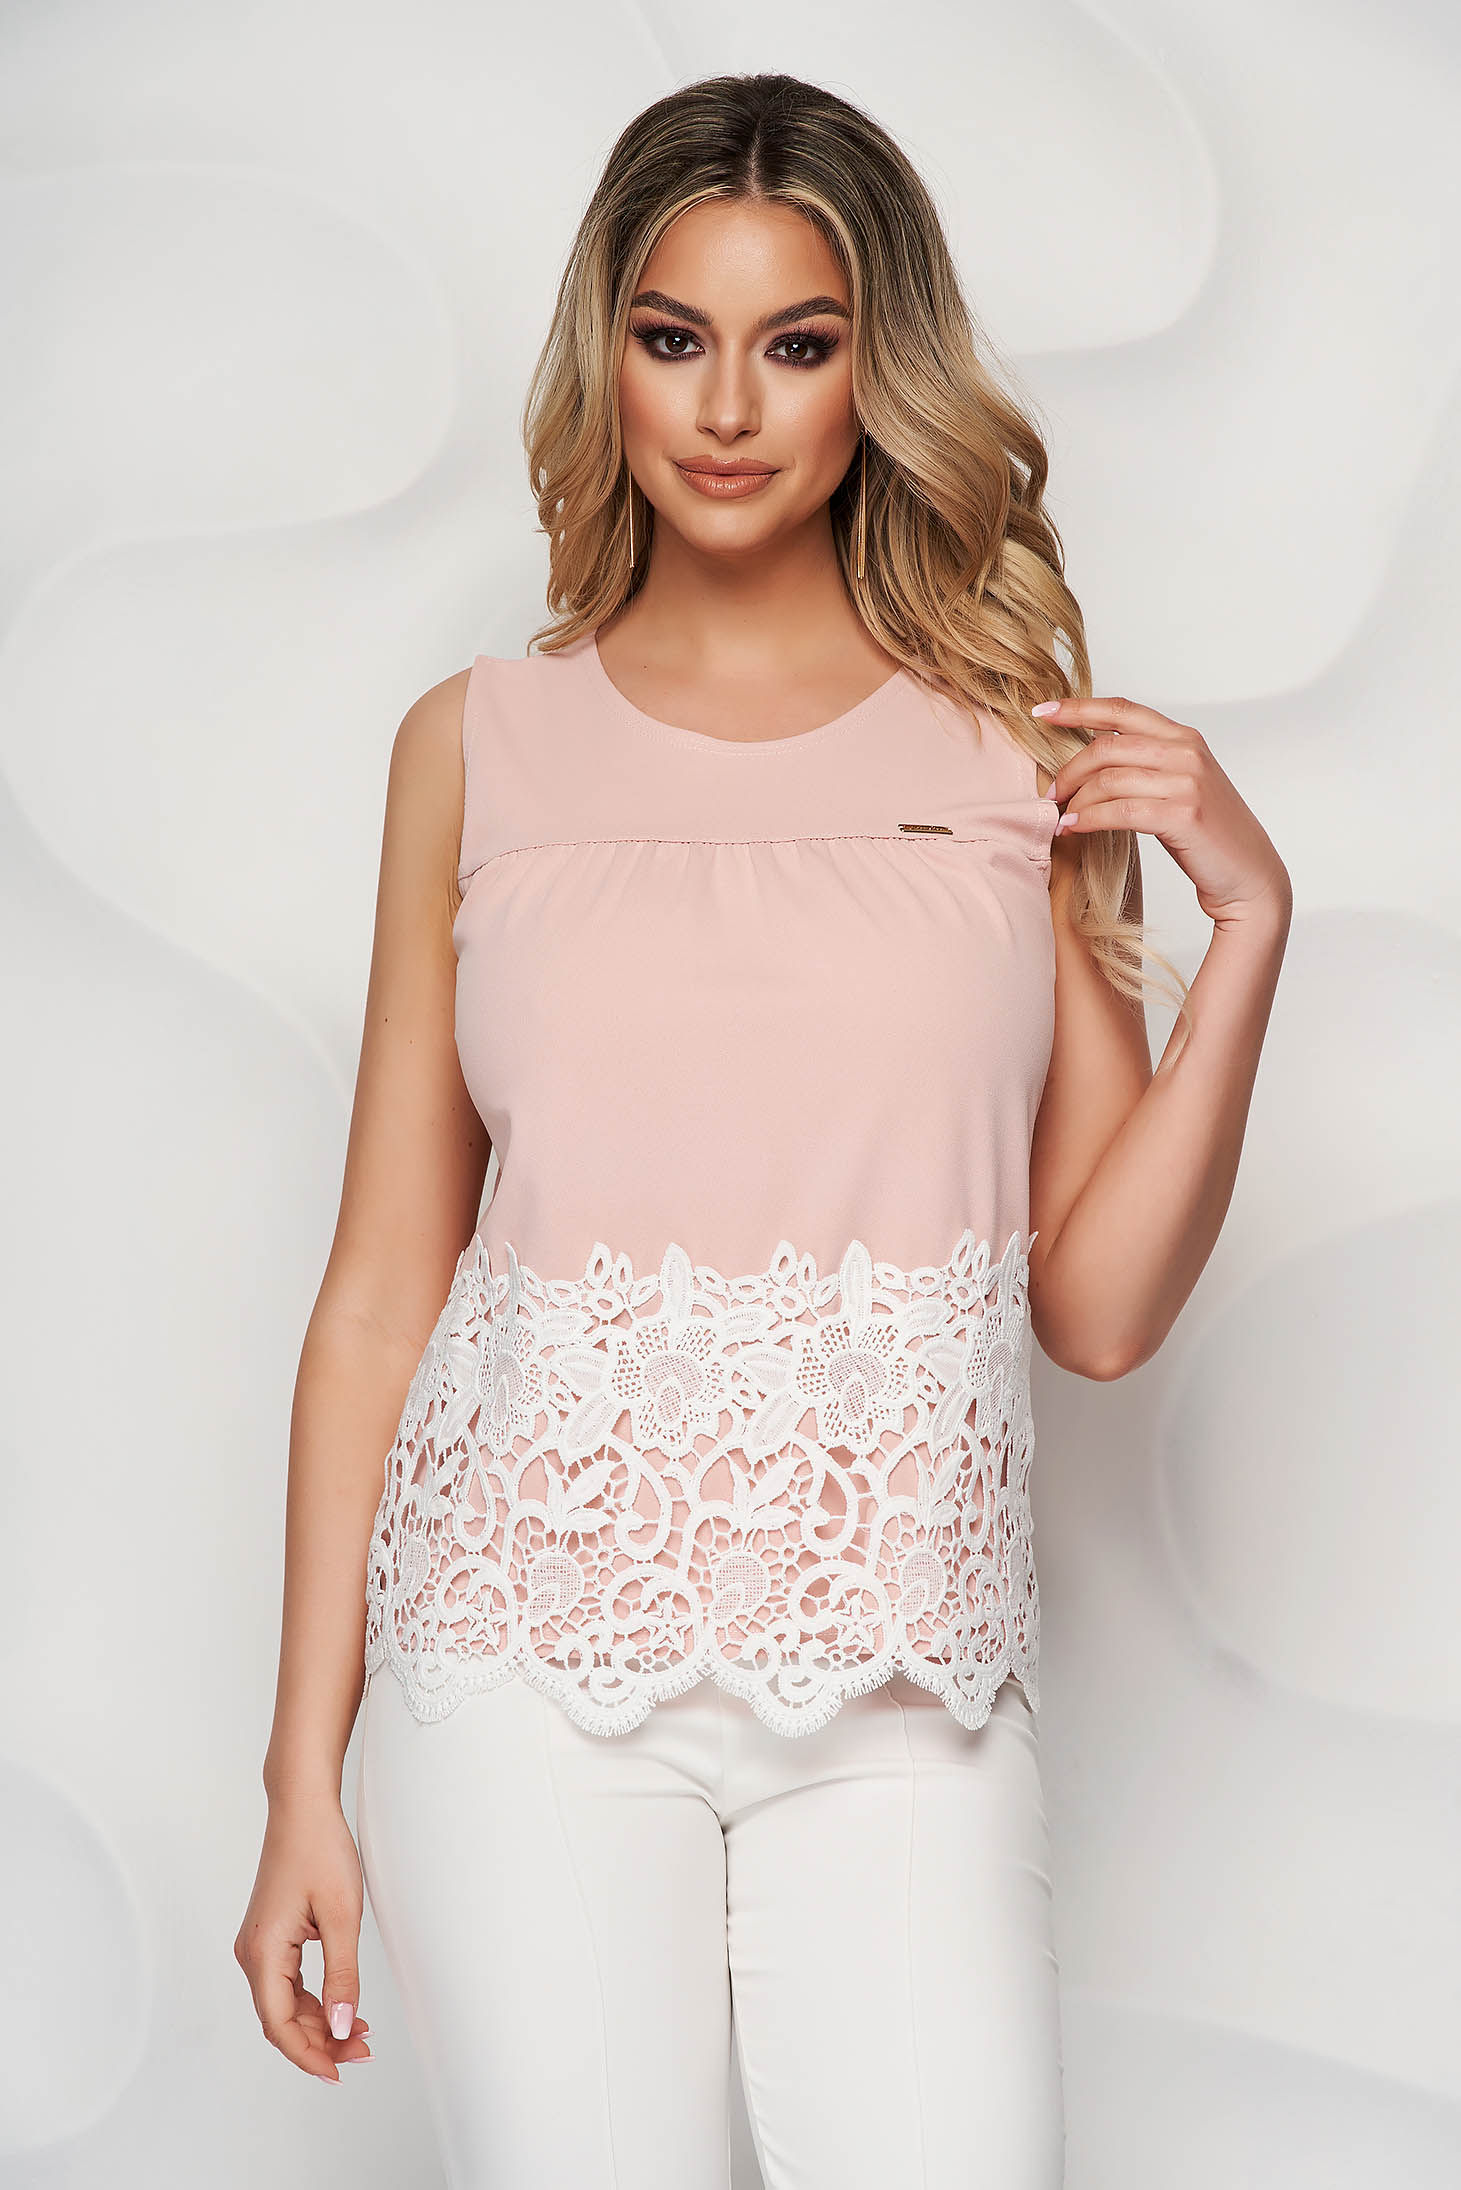 Lightpink top shirt office flared thin fabric with embroidery details